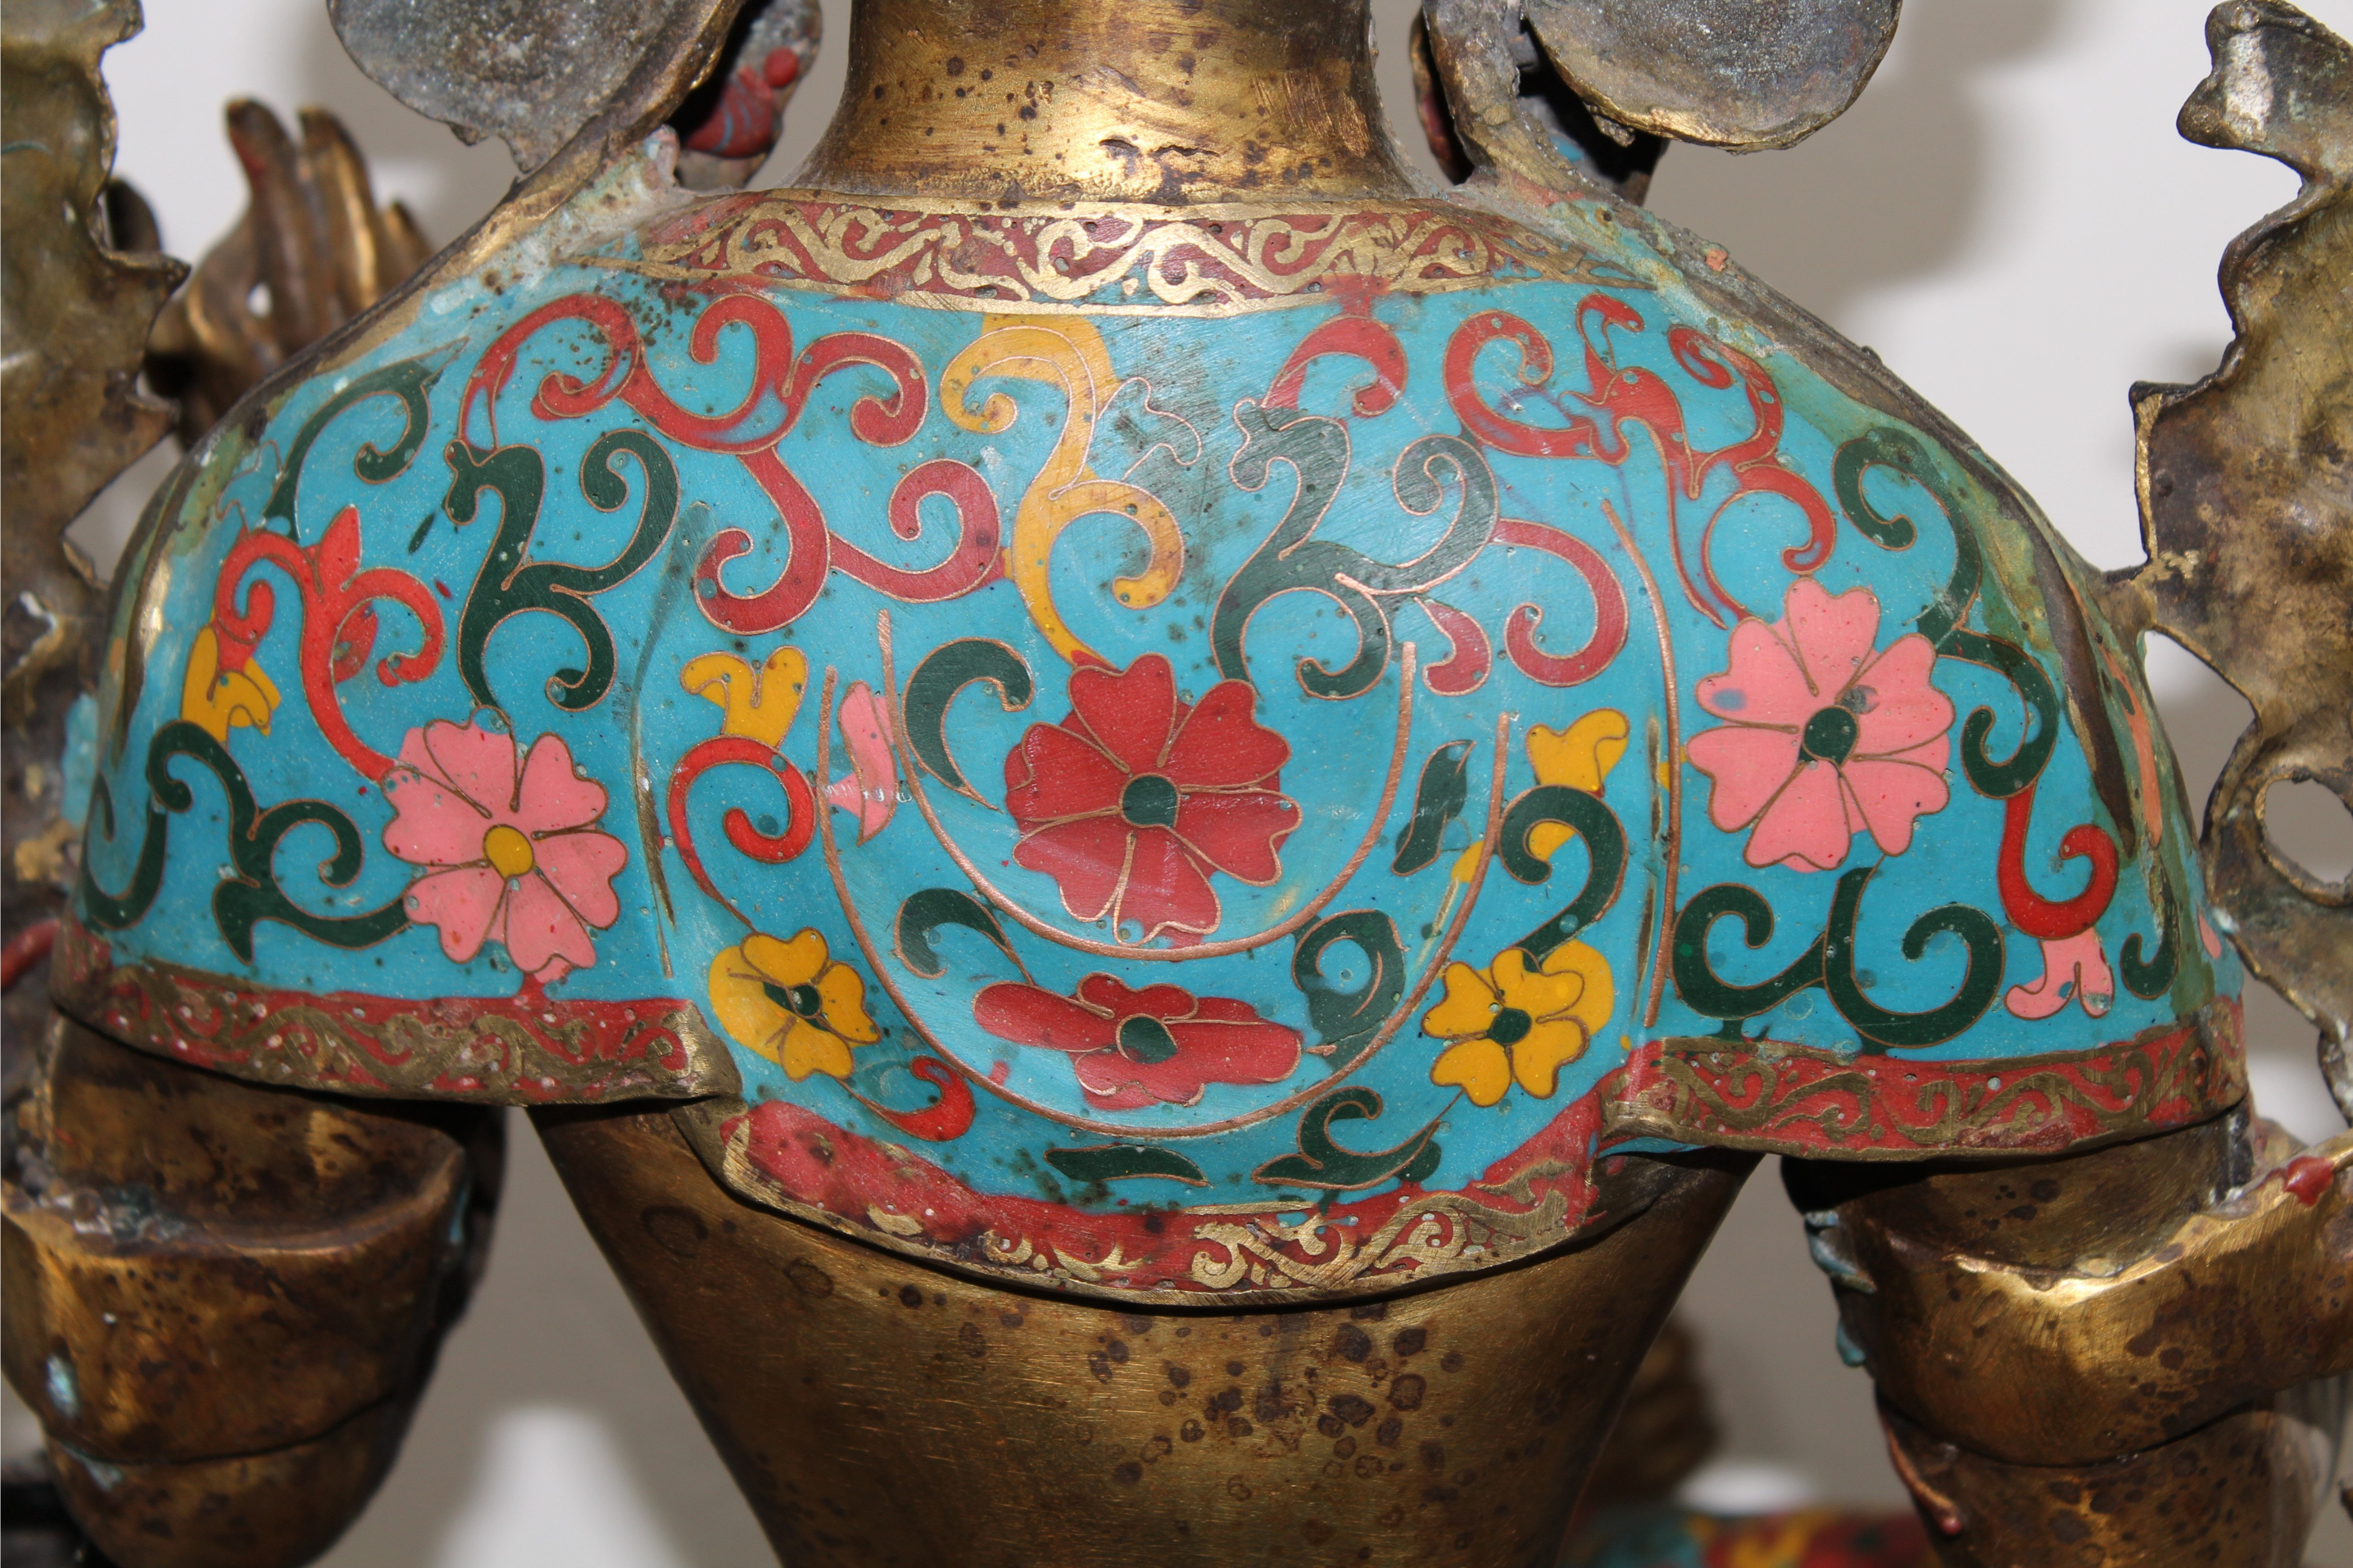 Lot 26 - Large Antique Chinese Cloisonne Figure, Signed